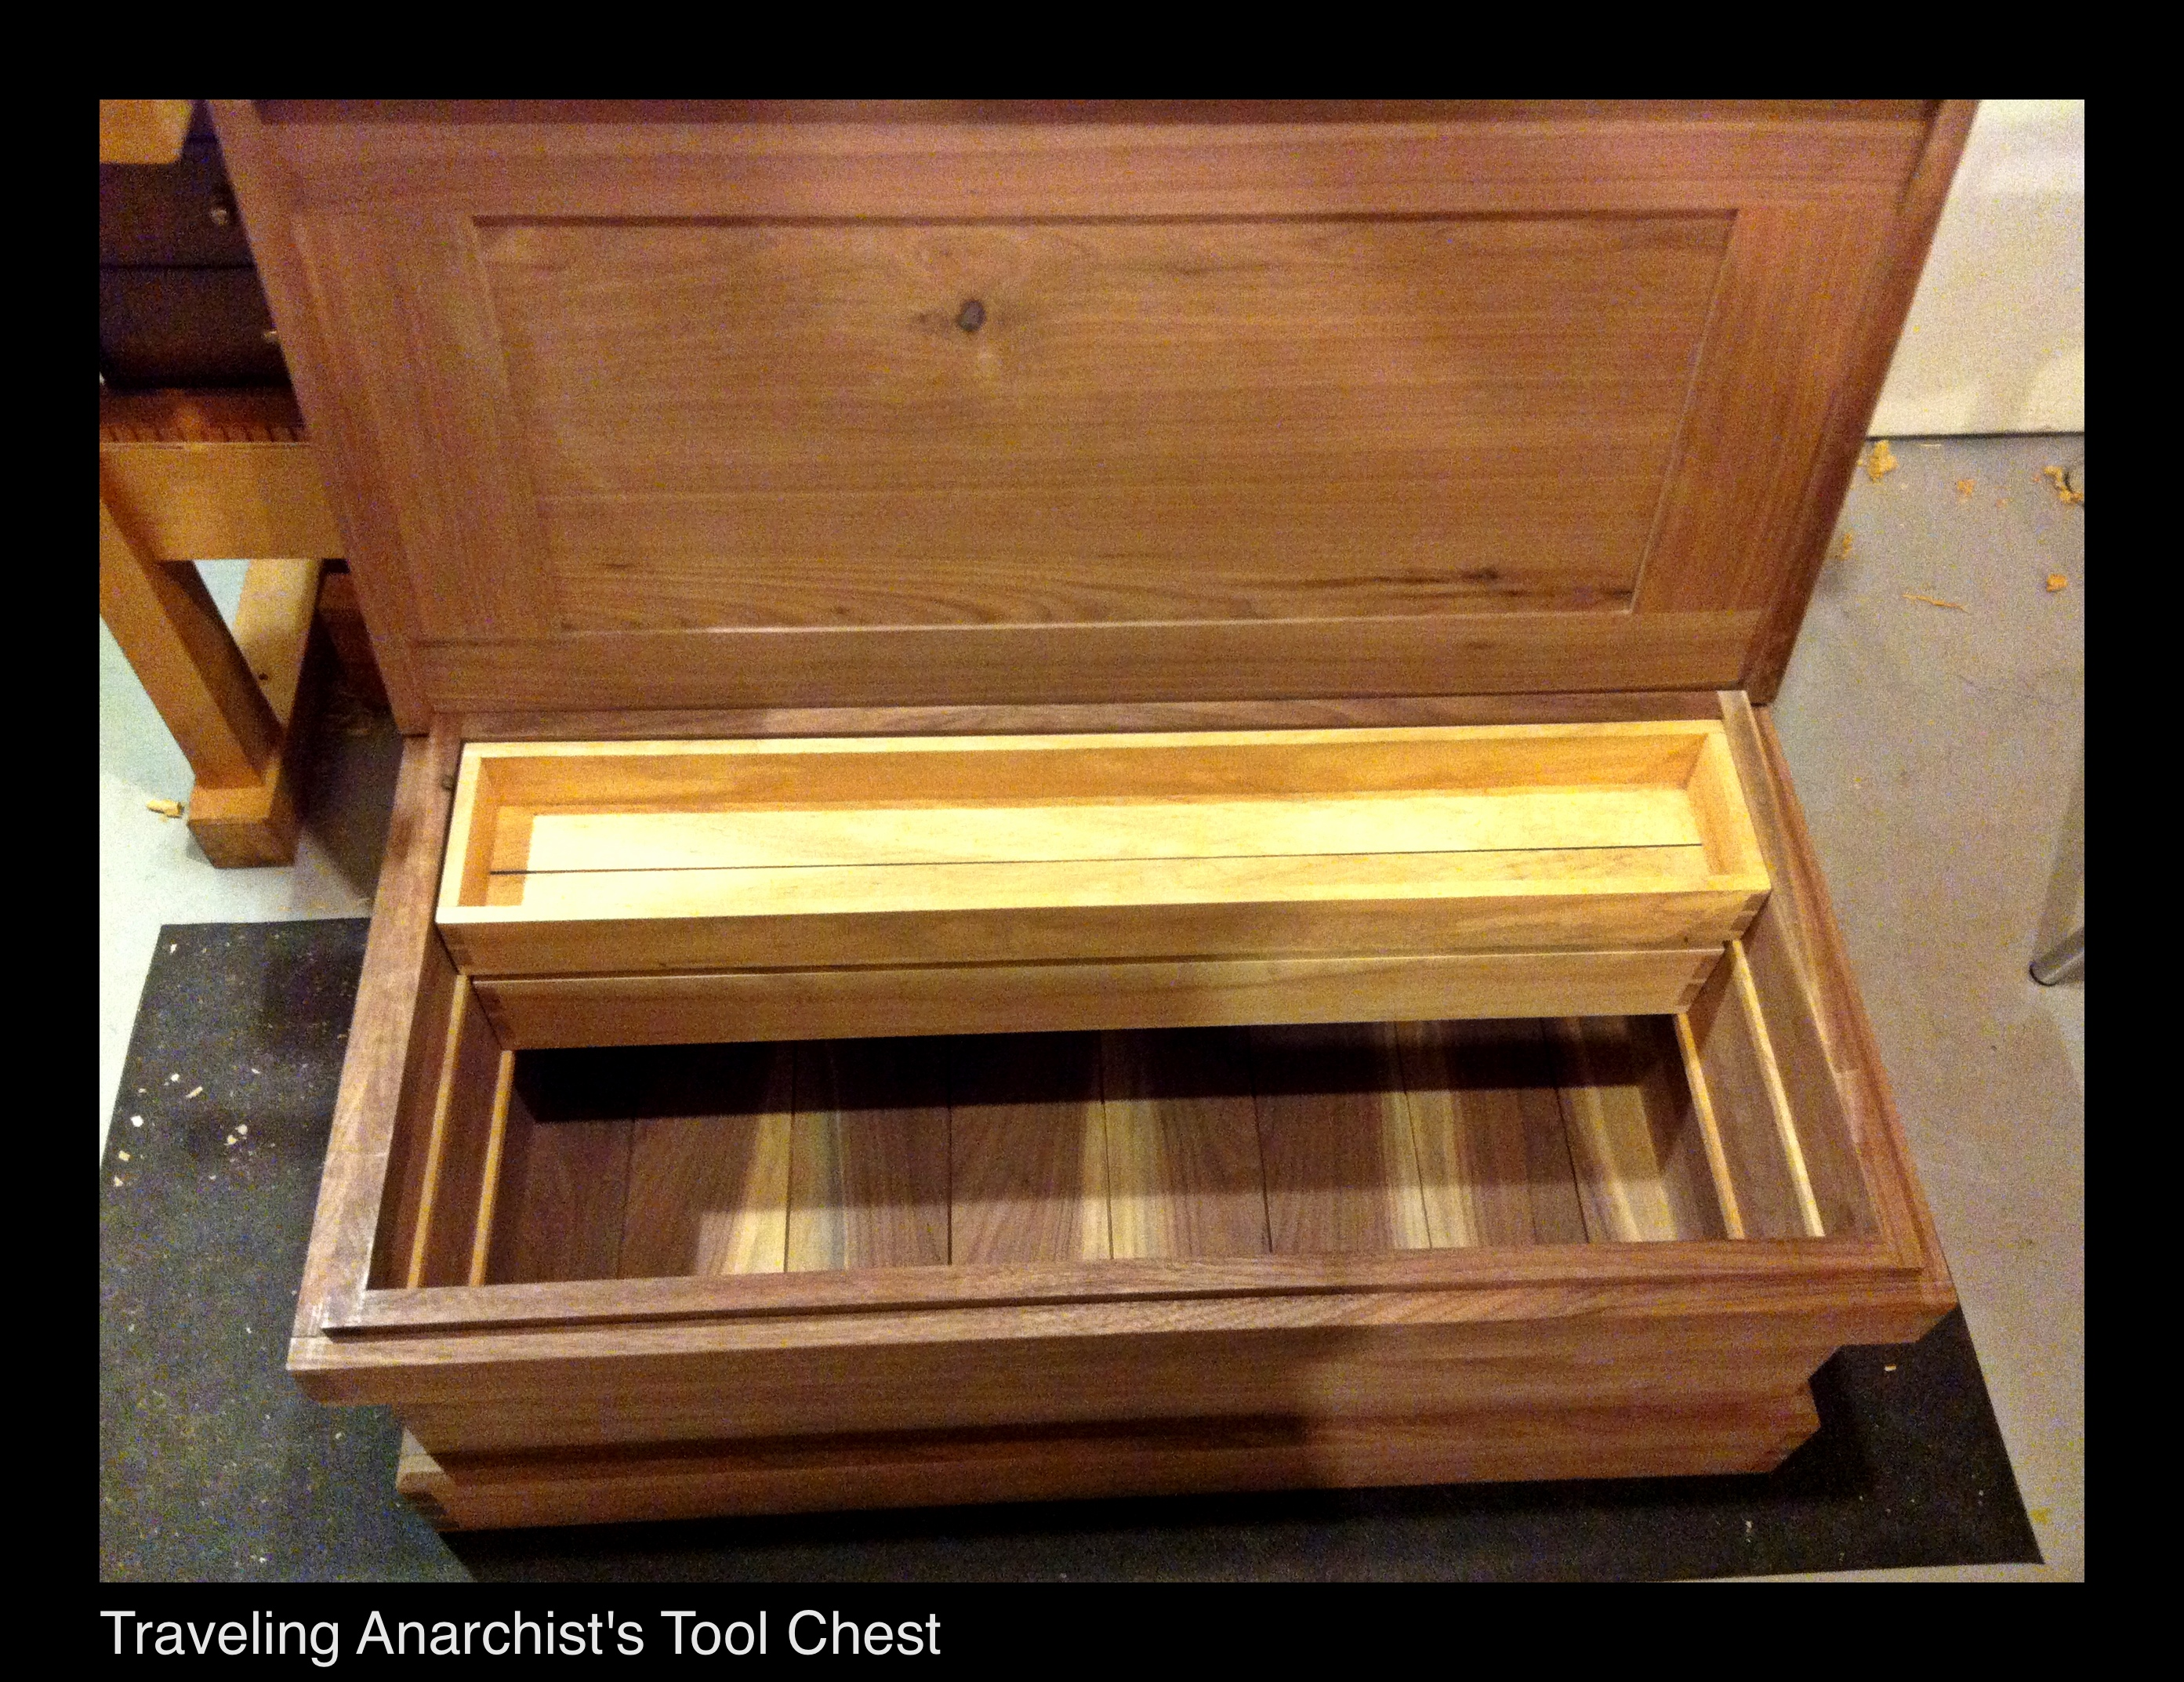 Flashier Tool Chests | Lost Art Press